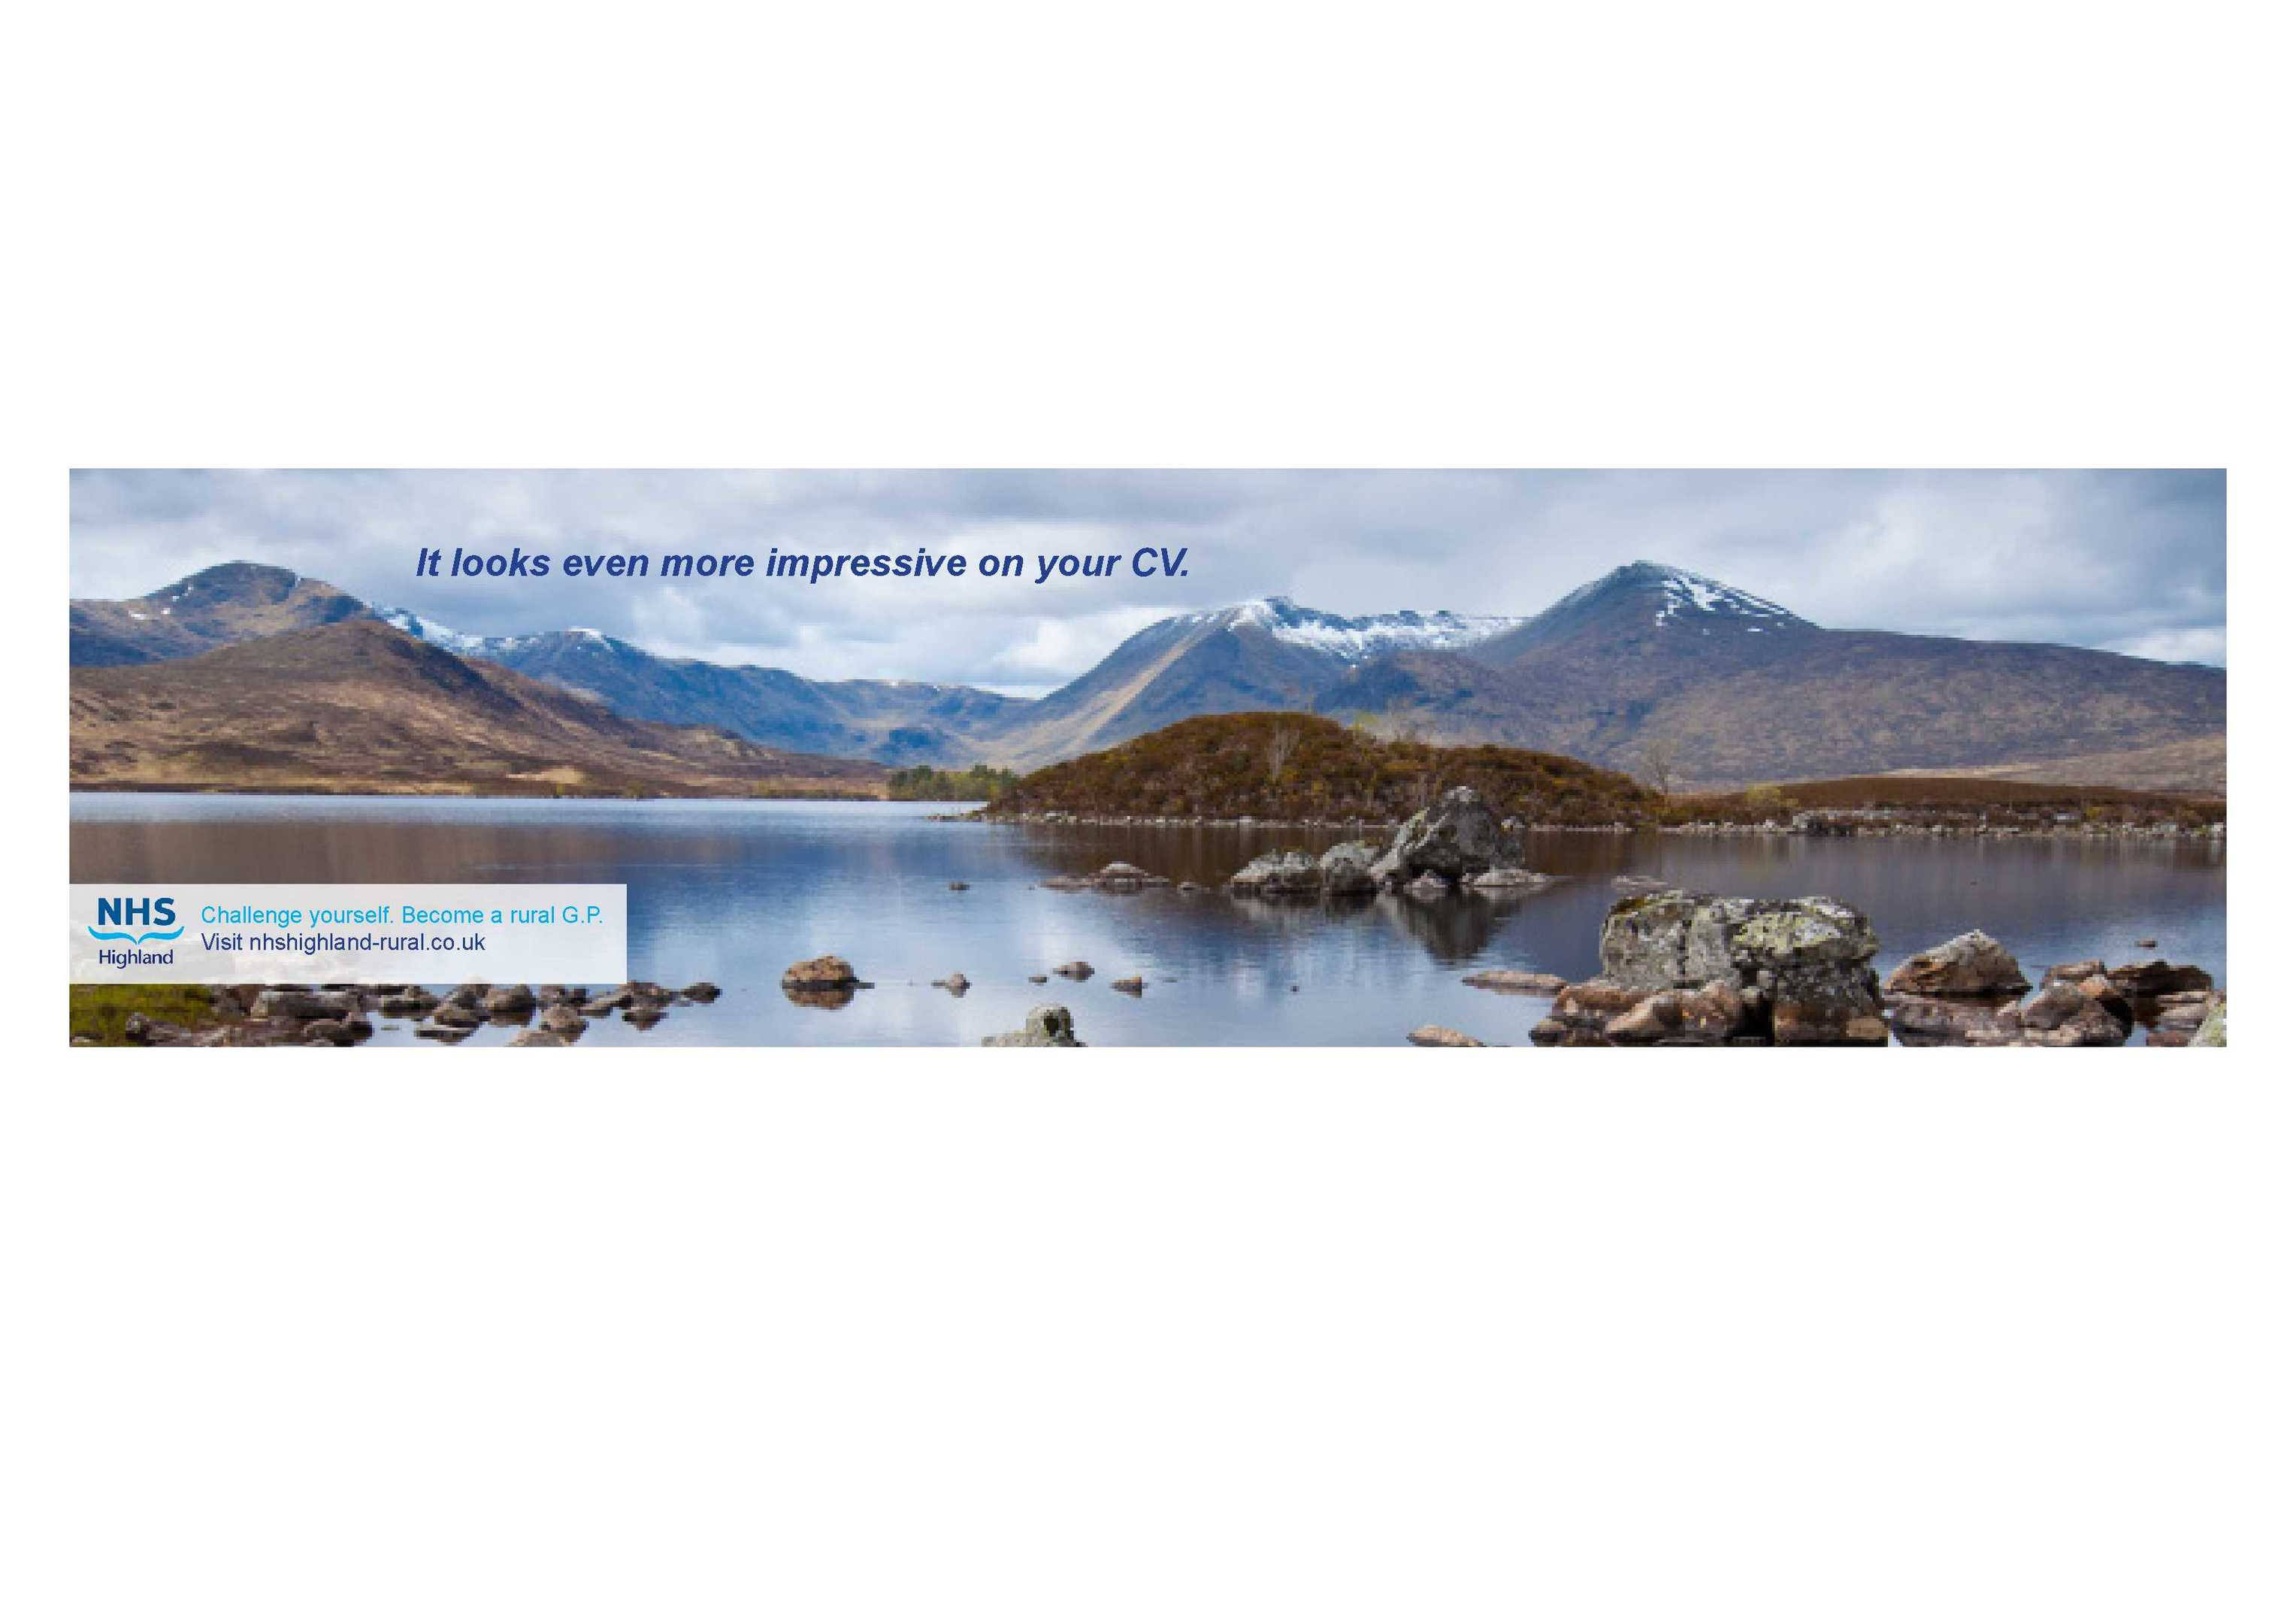 Adverts promote the outdoor benefits of the Highlands to GPs